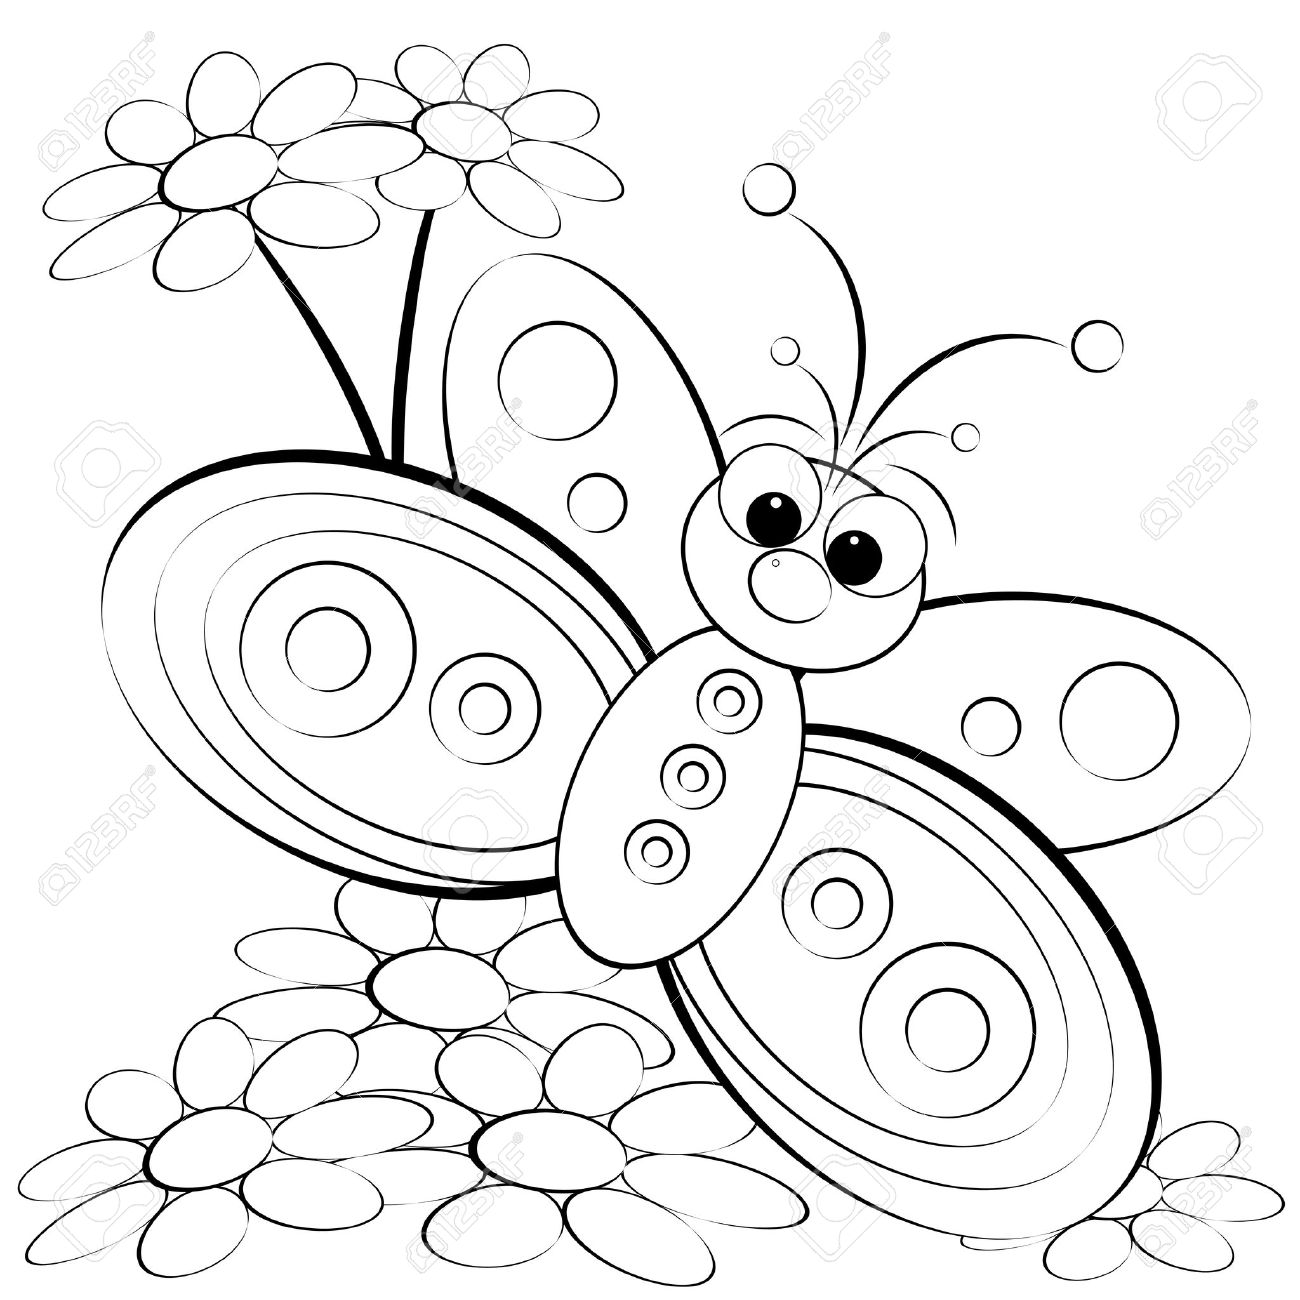 kids illustration with butterfly and daisy coloring page royalty